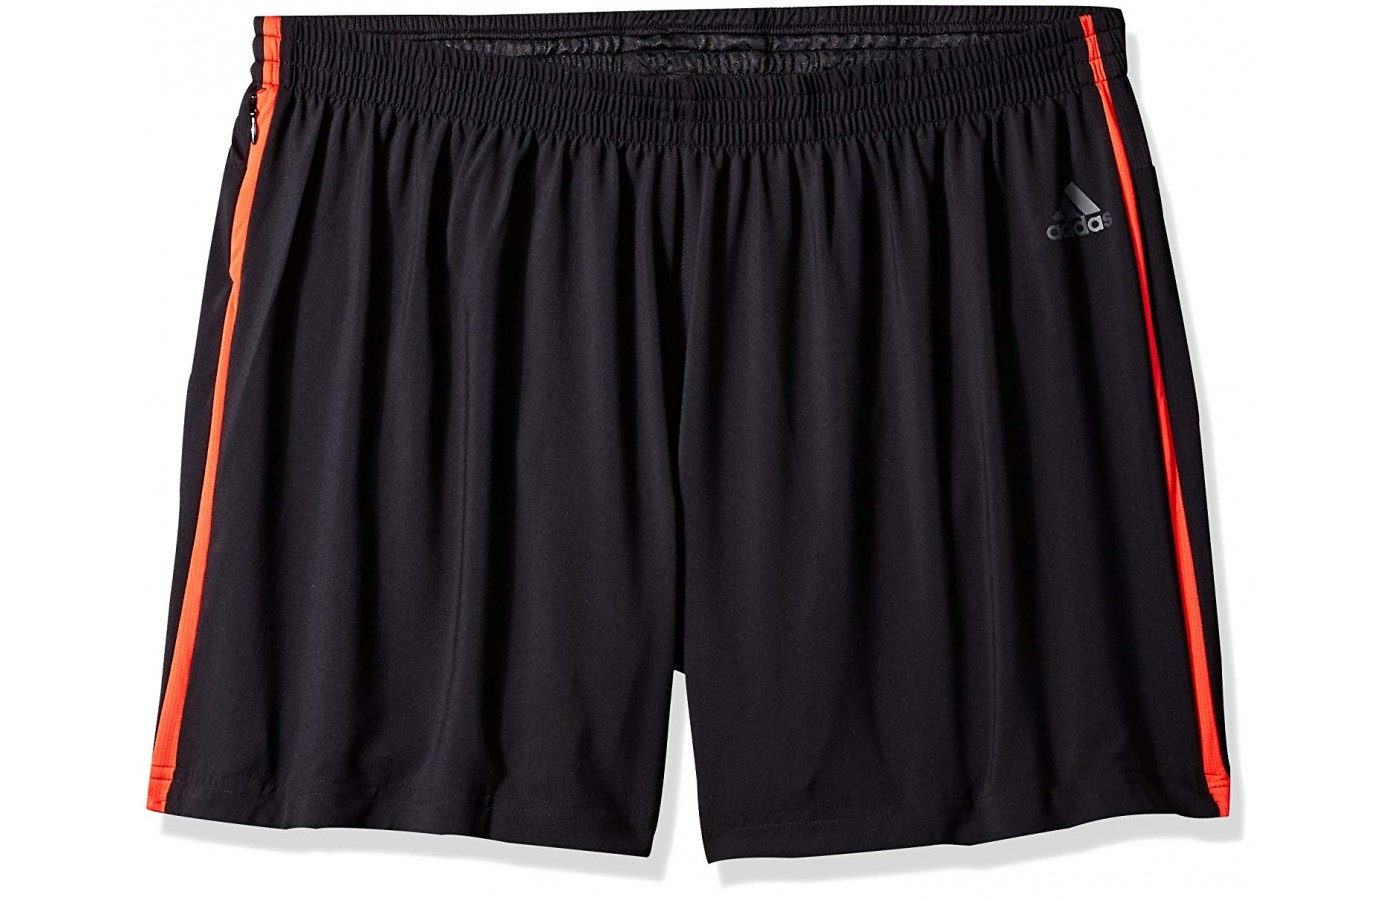 Front of the Adidas Response shorts.